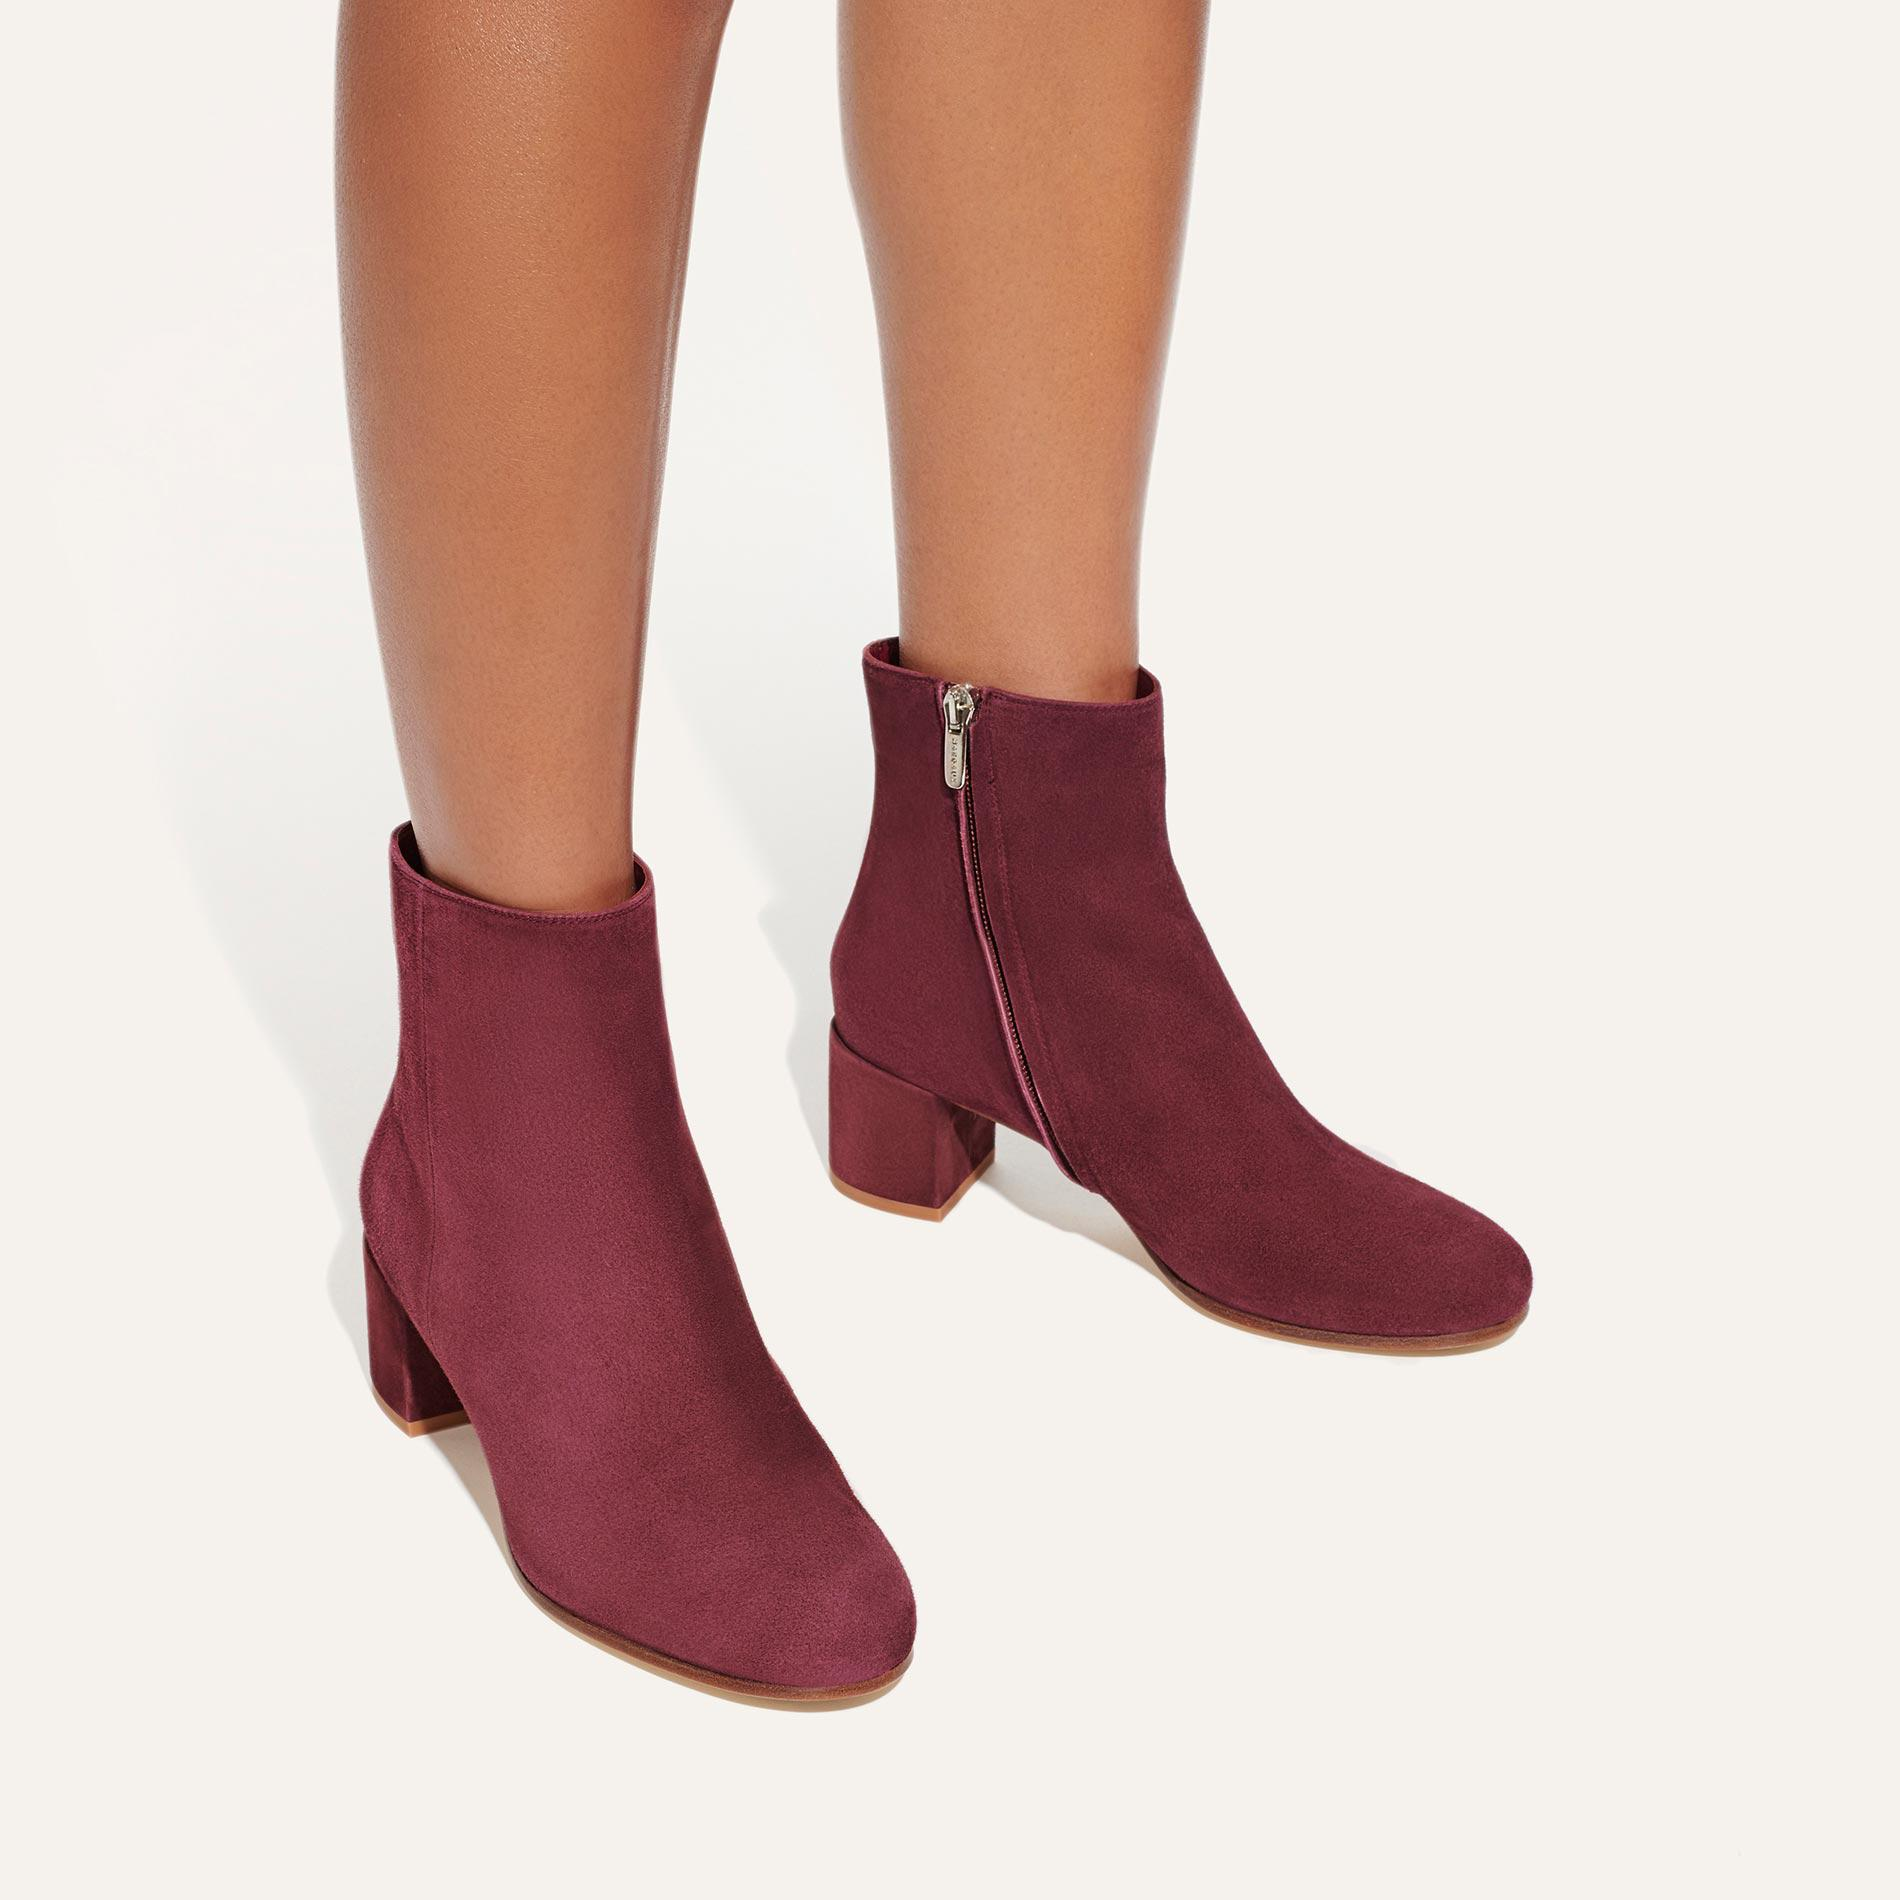 The Boot - Mulberry 4